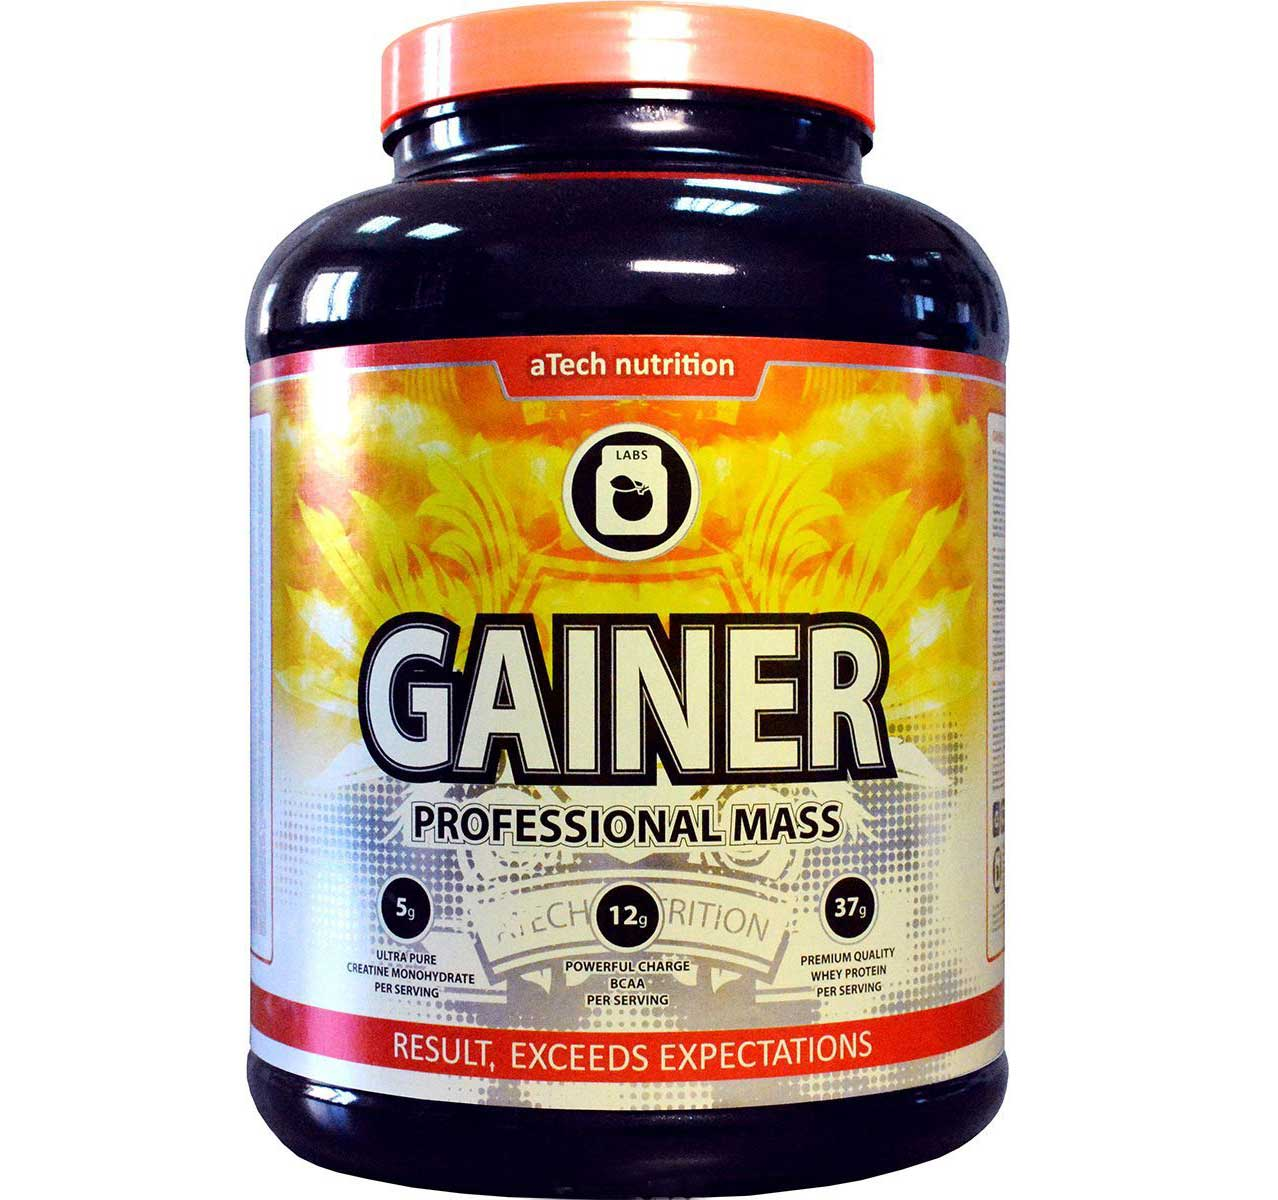 Gainer Professional Mass Atech